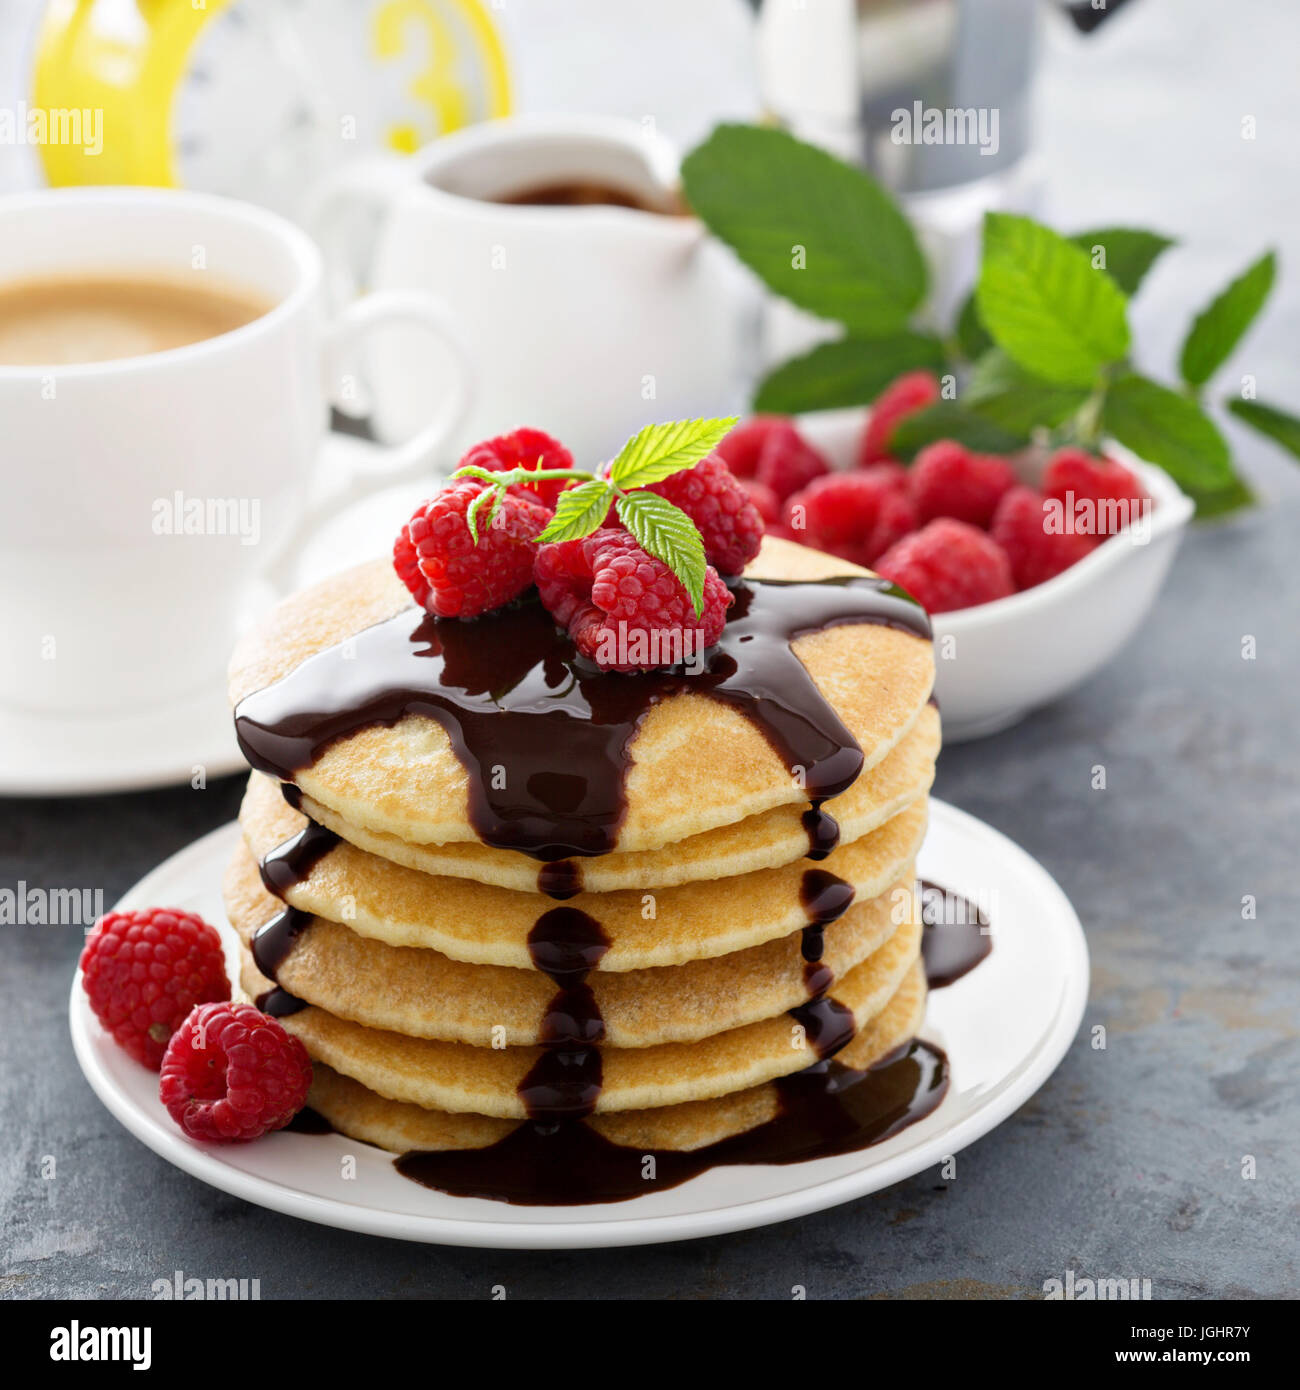 Stack of fluffy buttermilk pancakes with chocolate - Stock Image